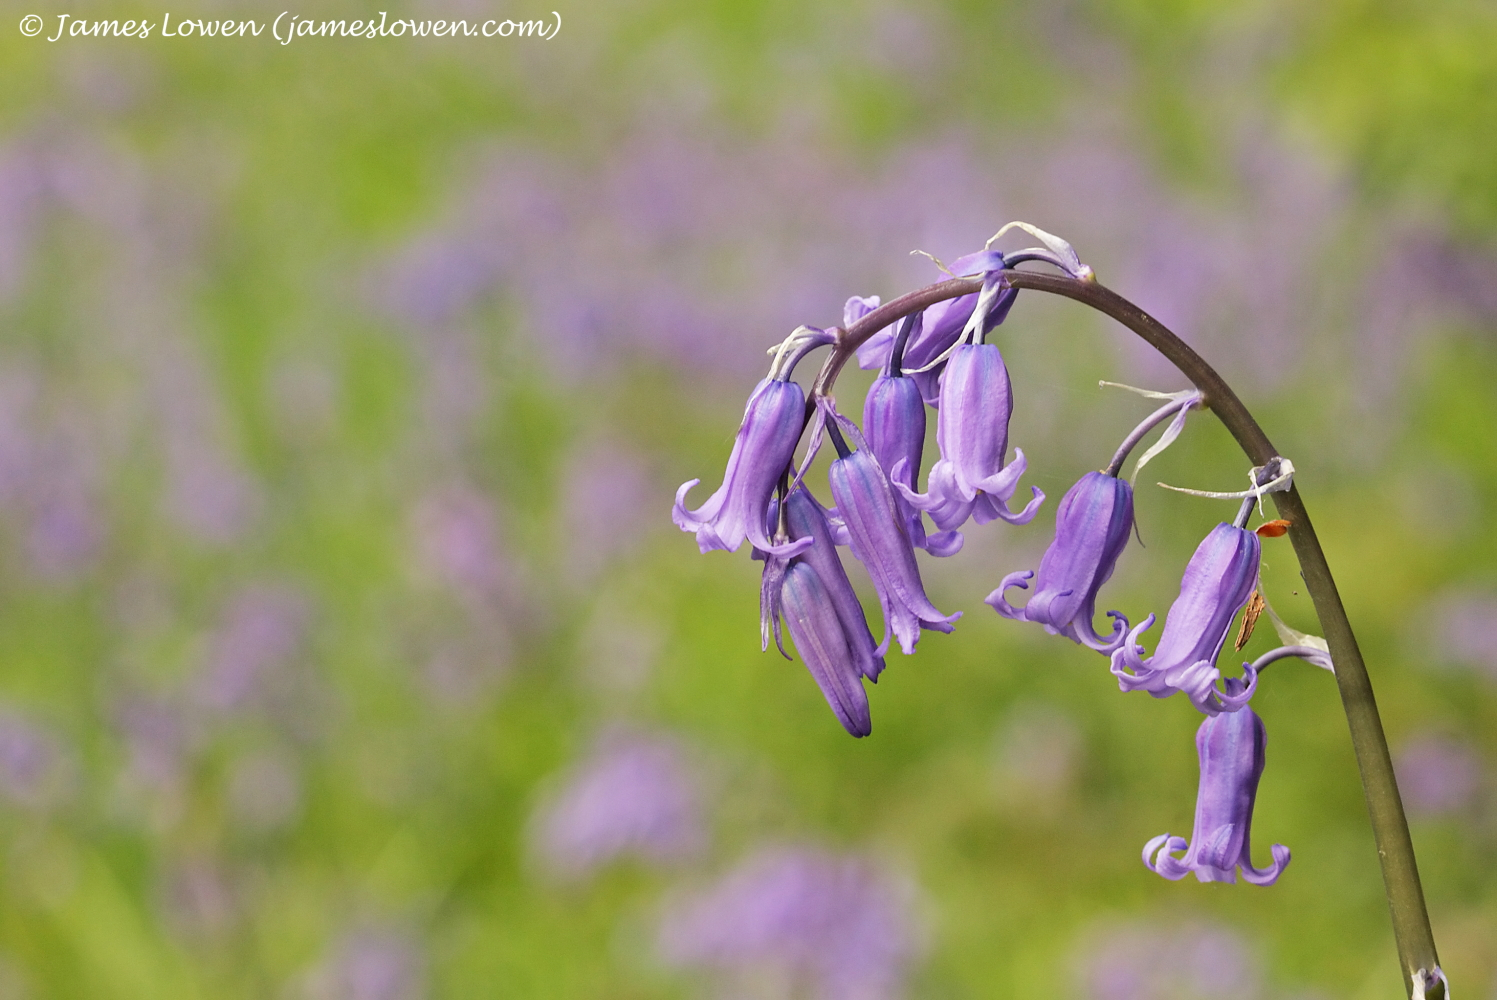 4_Bluebells_James-Lowen_9317-copy